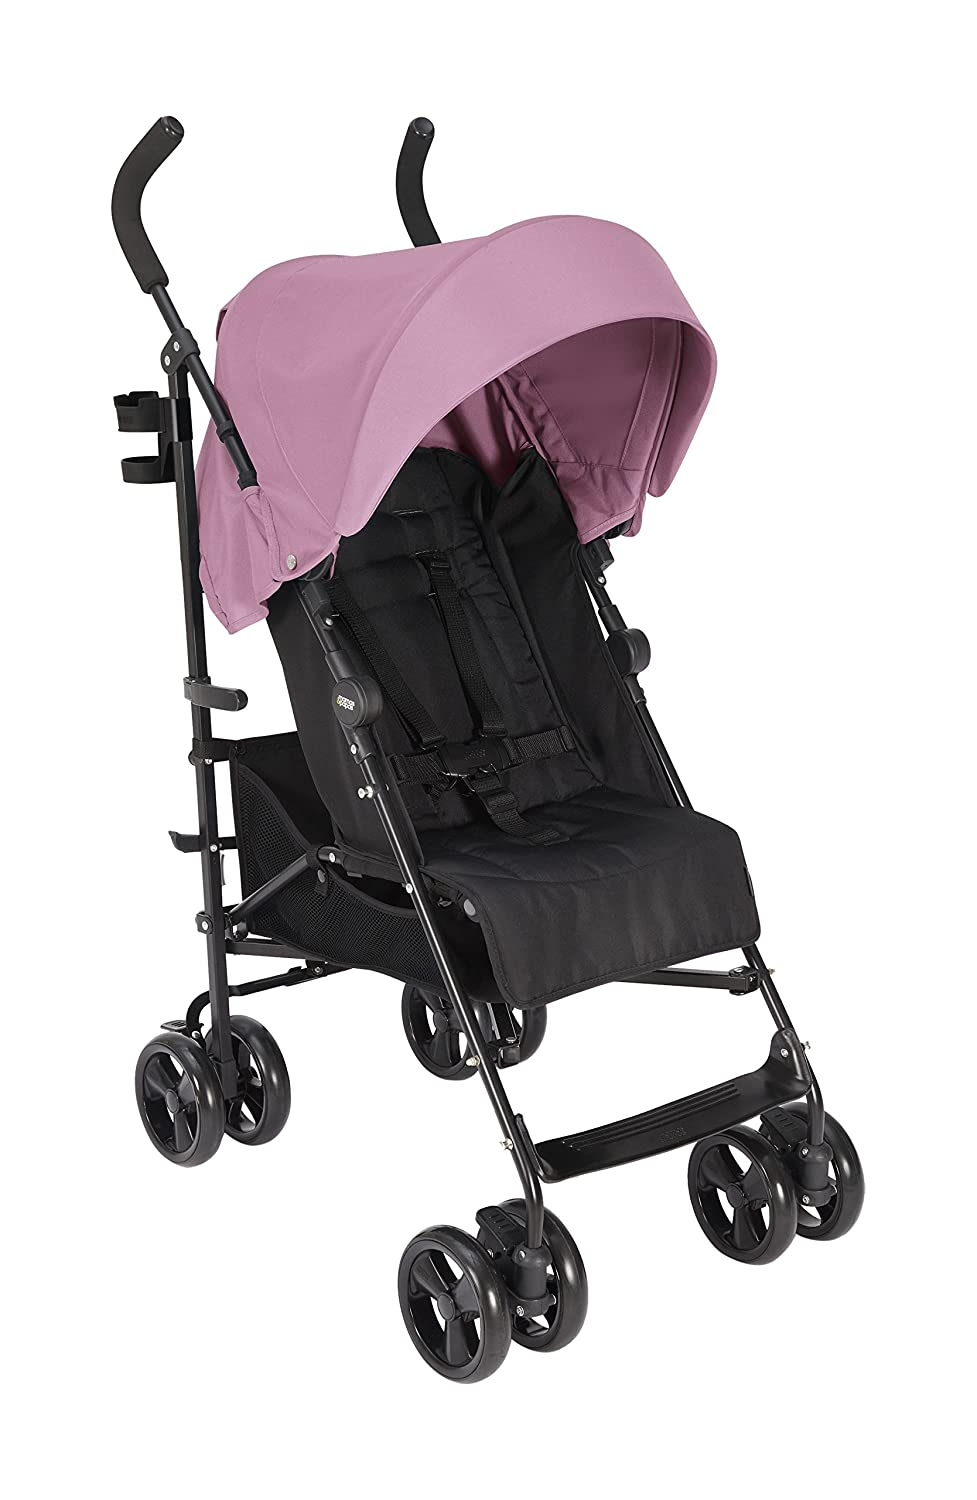 Mamas & Papas Cruise Practical Folding Pushchair Buggy with Front Suspension Wheels, Adjustable Lie Flat Seat & Large Protective Hood – Rose Pink 5573X5400